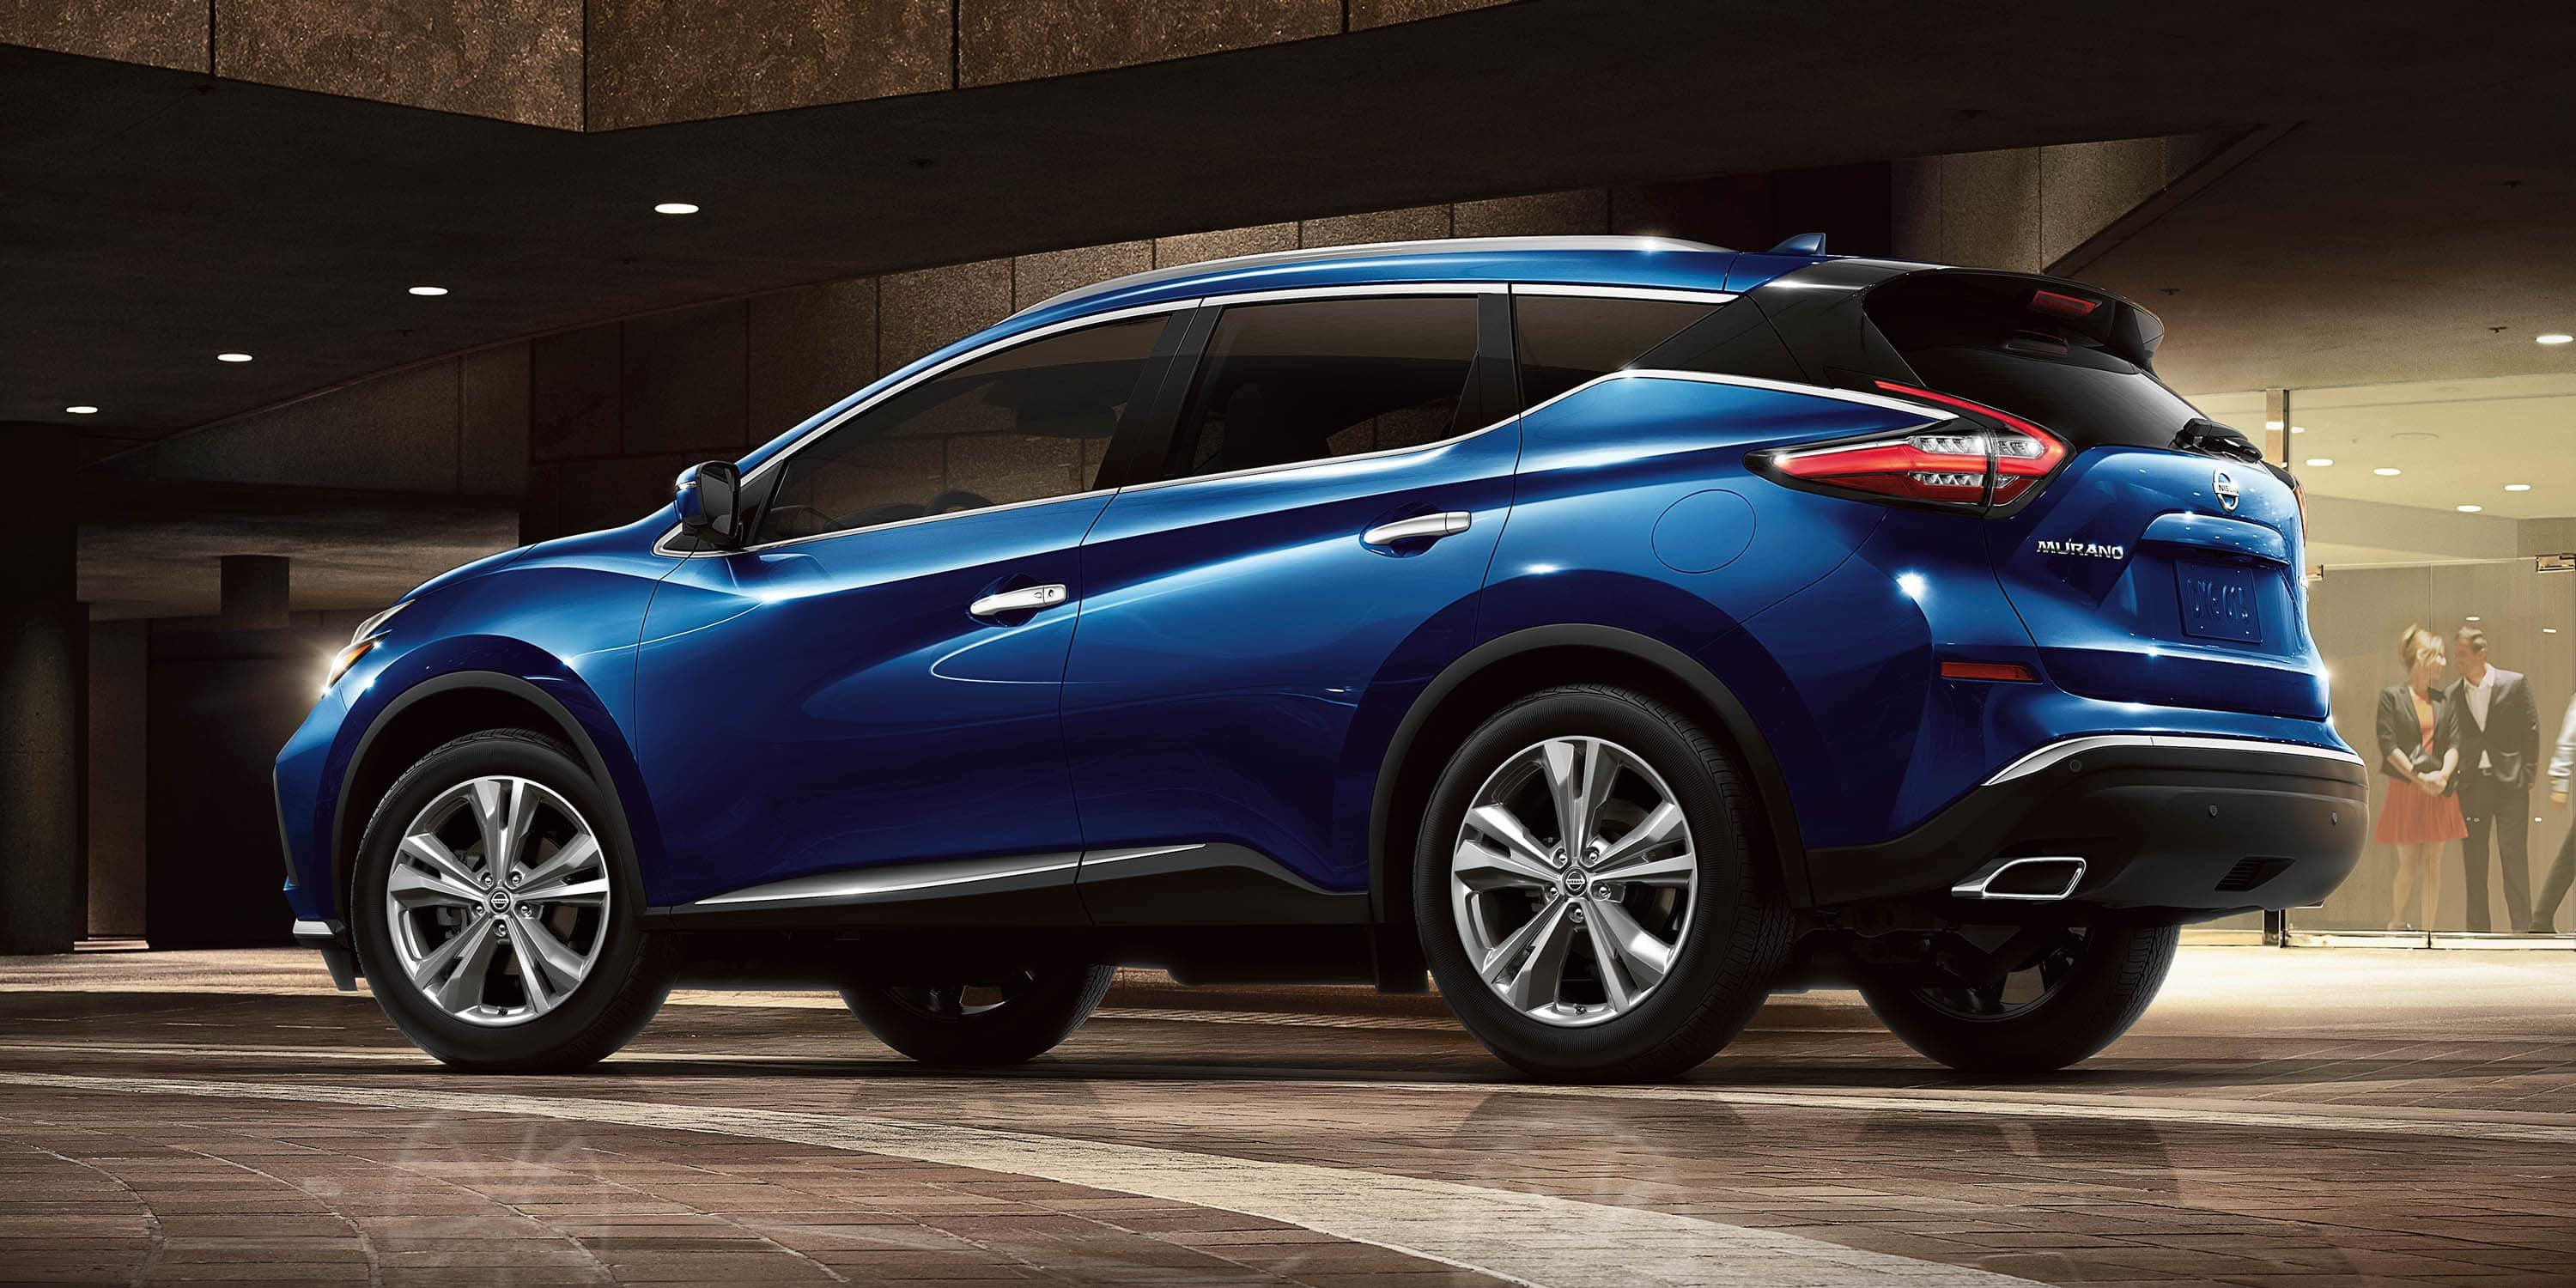 Nissan Murano Lease Offers & Deals in Skokie IL | Martin Nissan